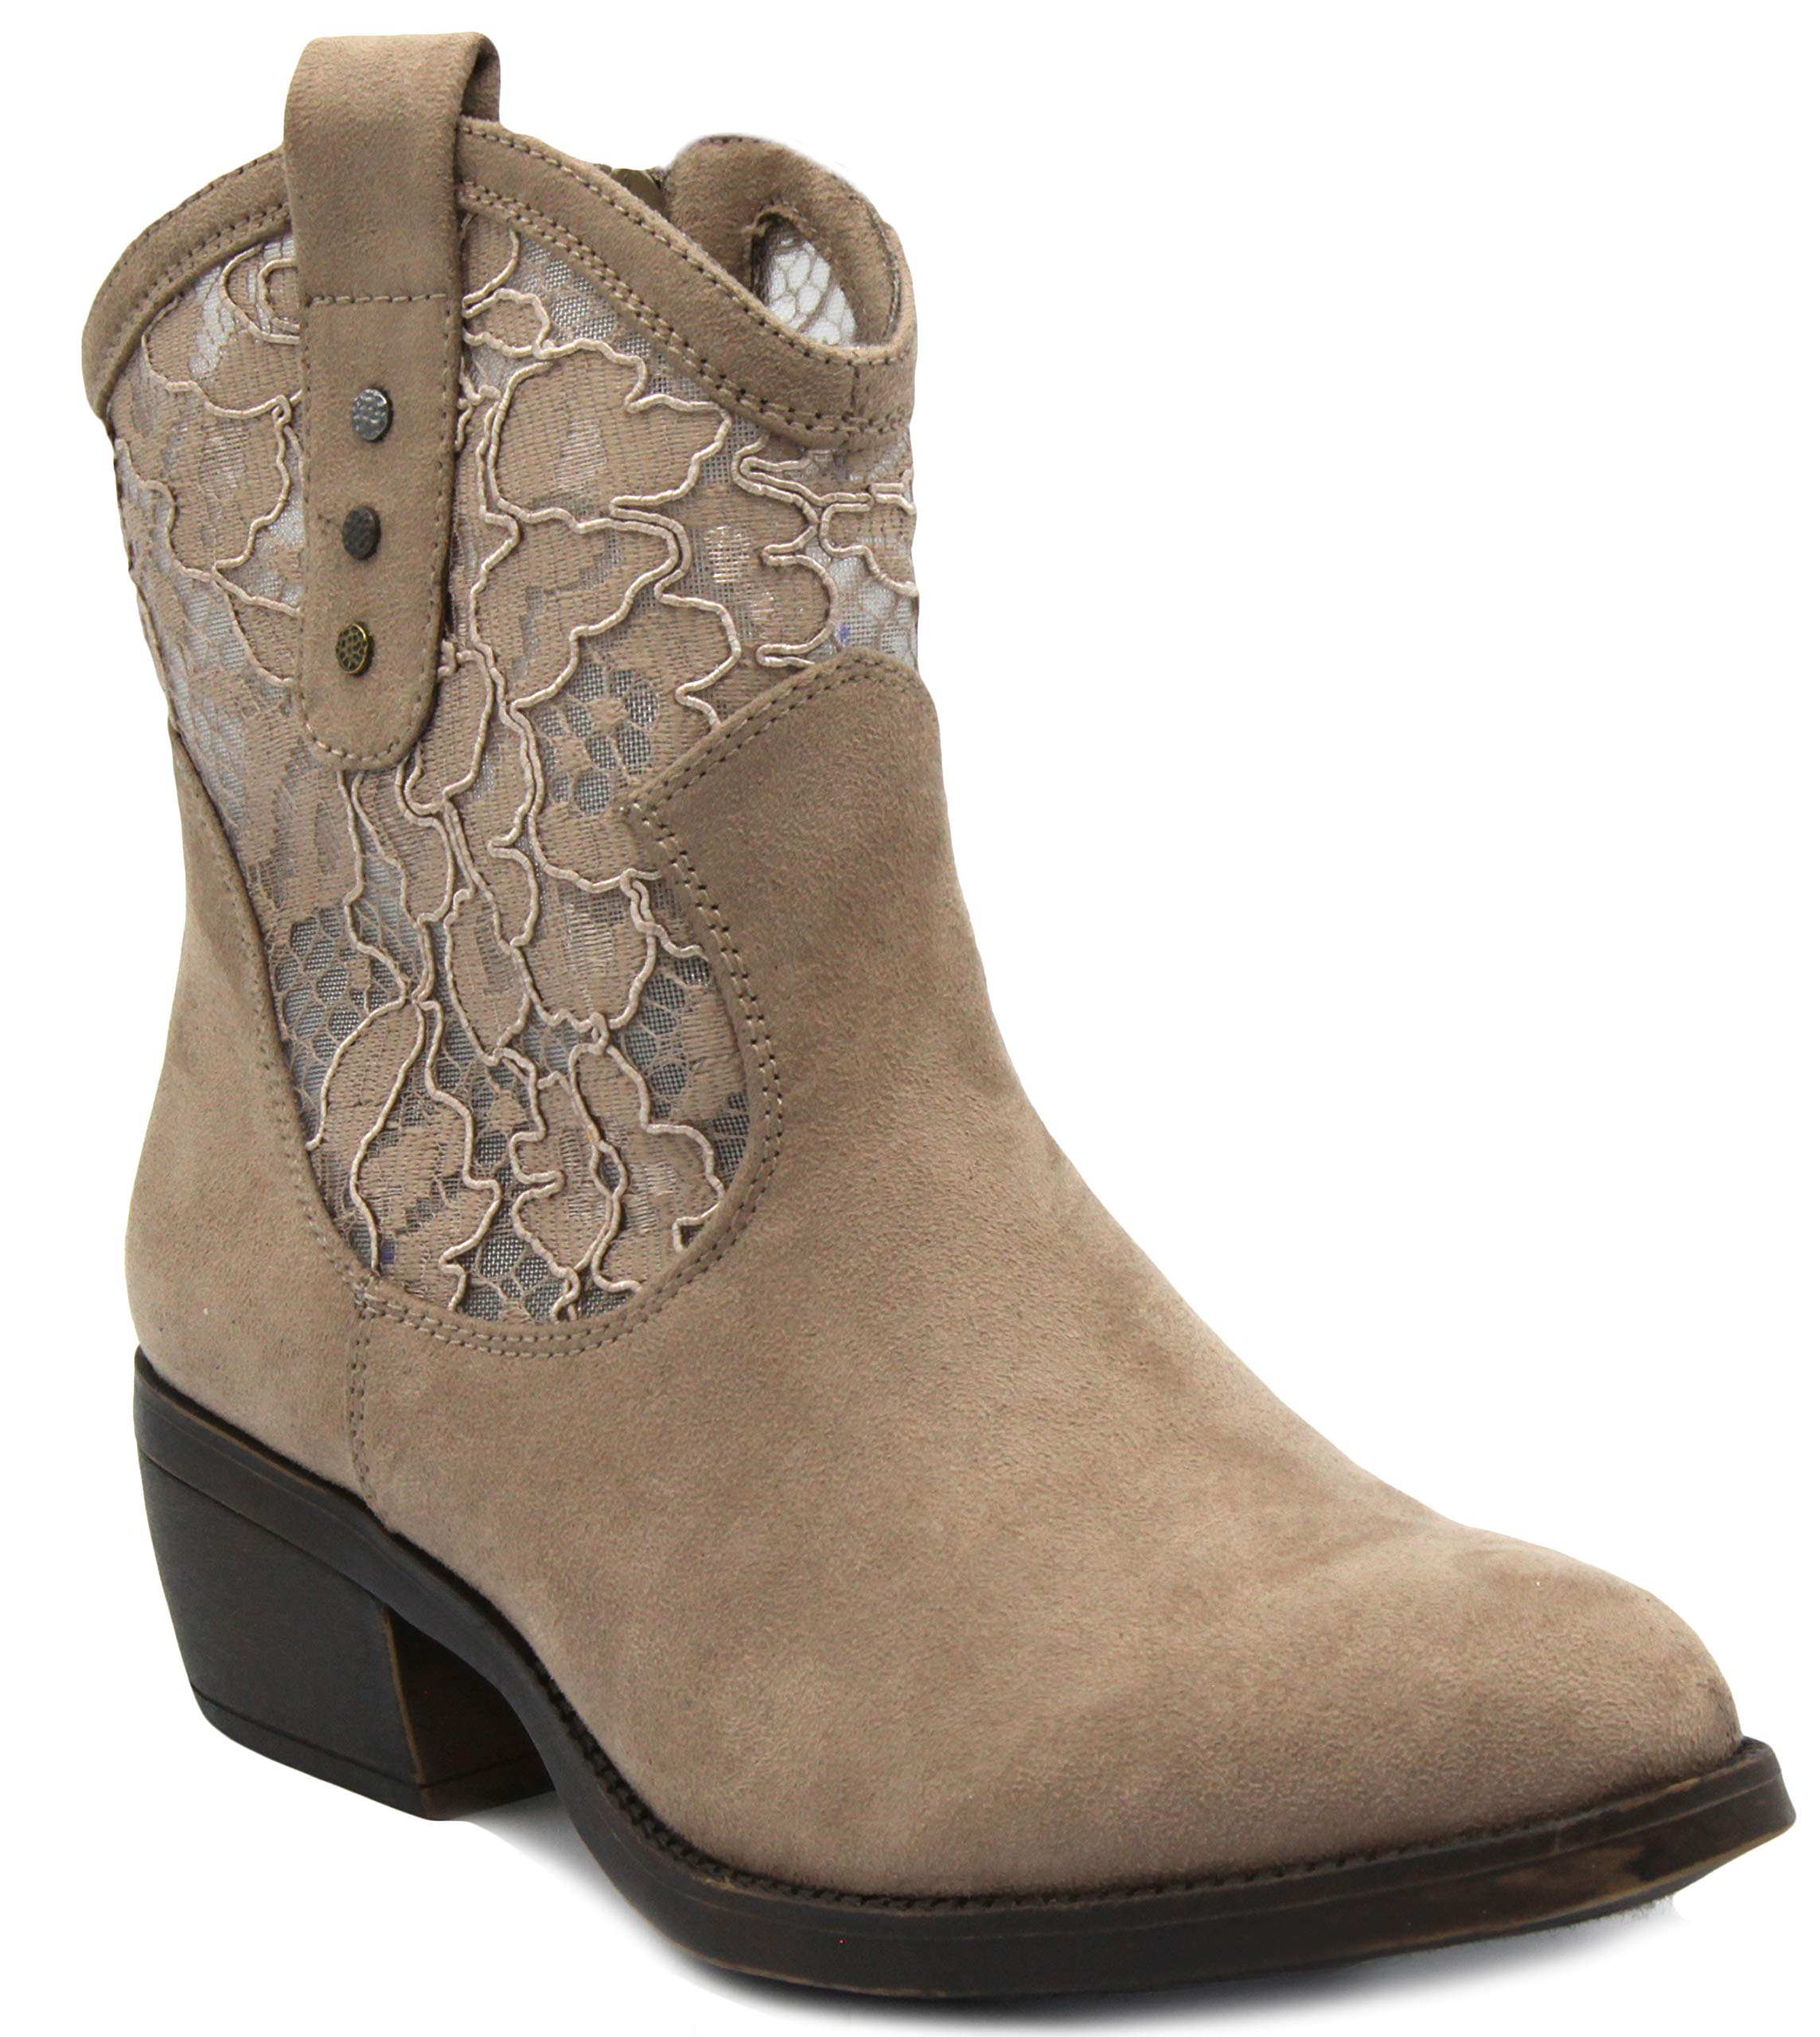 Rampage Women's Thriller Low Shaft Mid Calf Western Ladies Boot with Side Zip Taupe with Lace 6